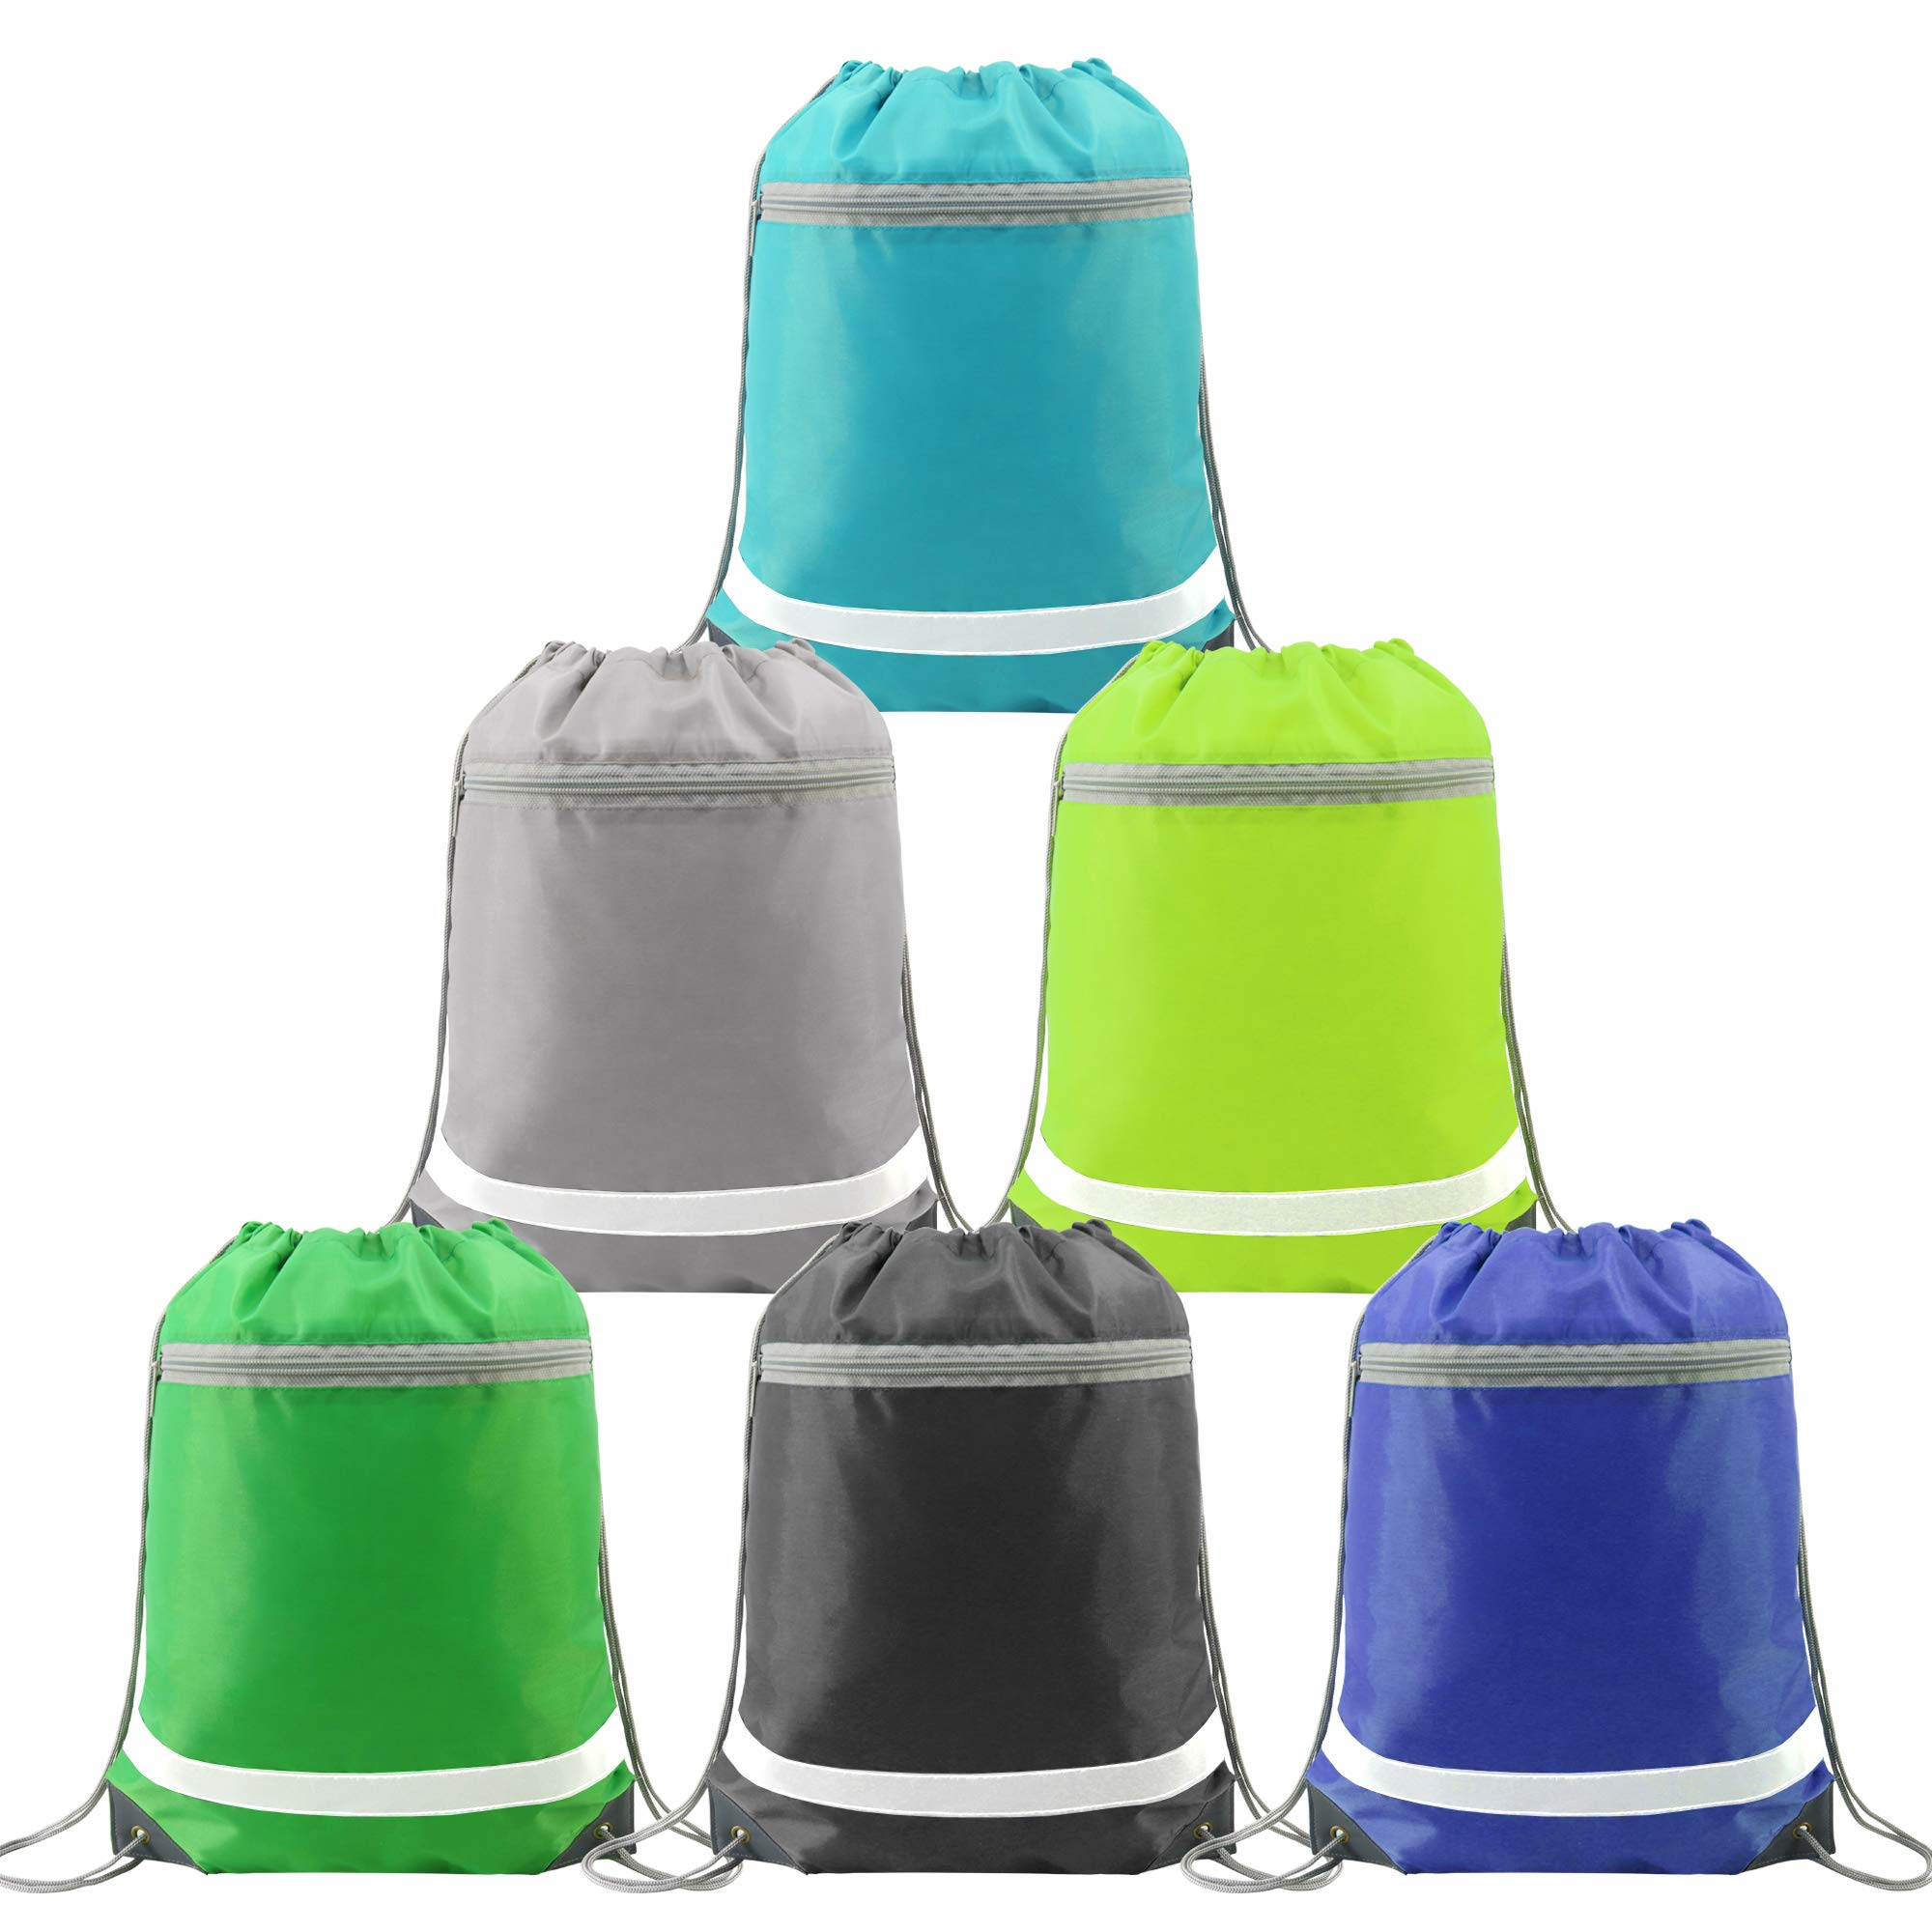 Drawstring Backpack Bags Bulk with Pocket, Cheap Gym Sacks Reflective Cinch Bags Sackpack 6 Pack